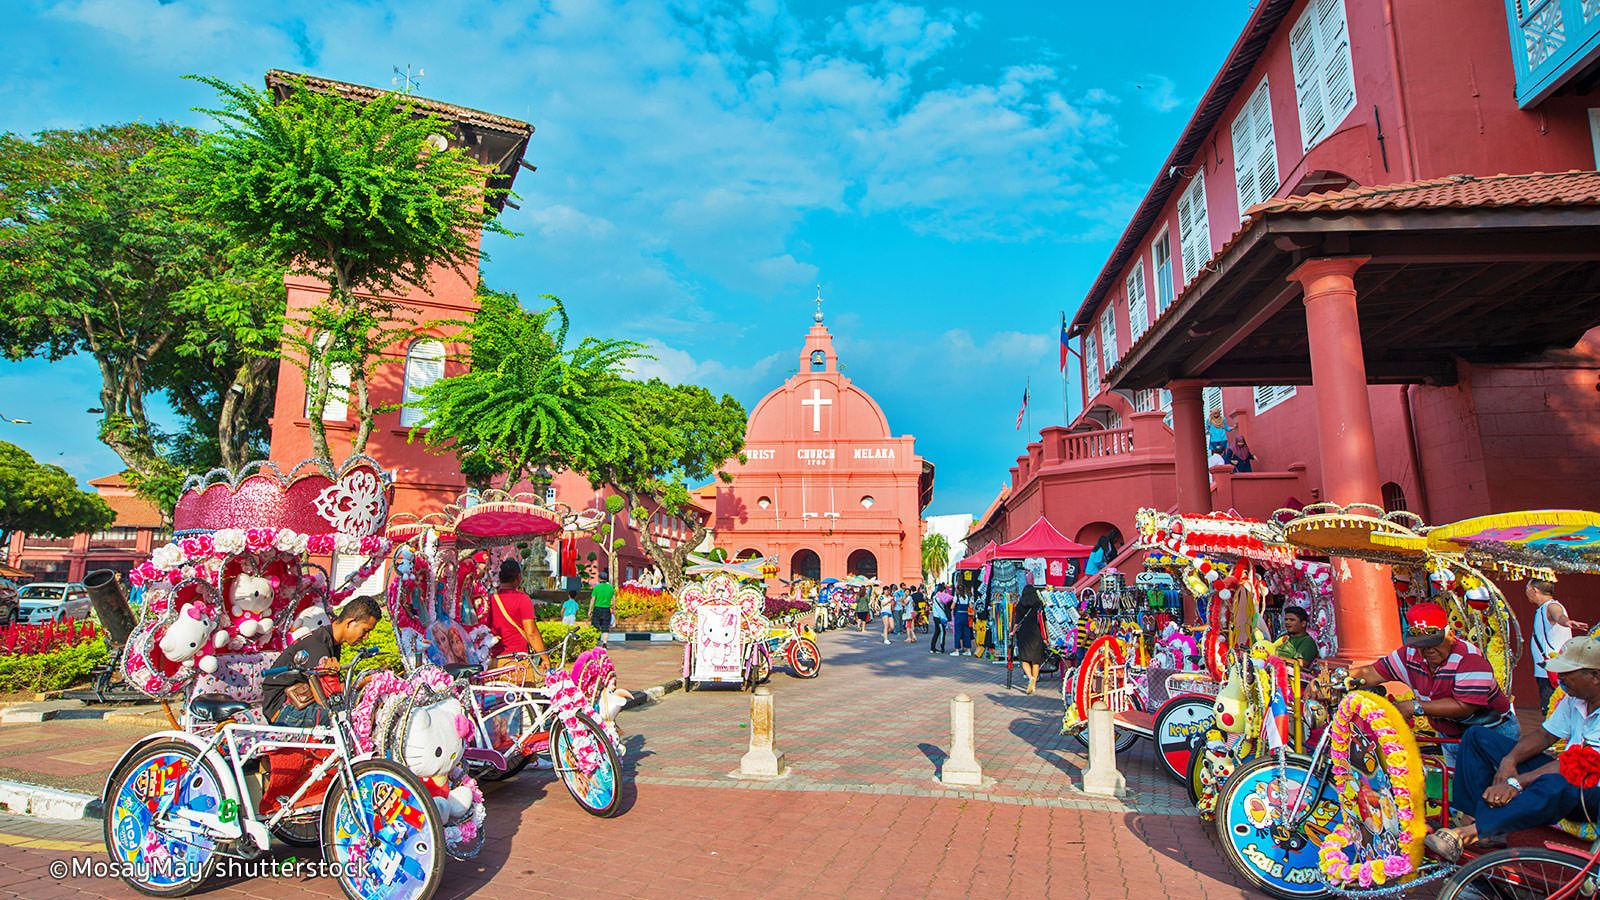 Eye-catching historical sights at Malacca City